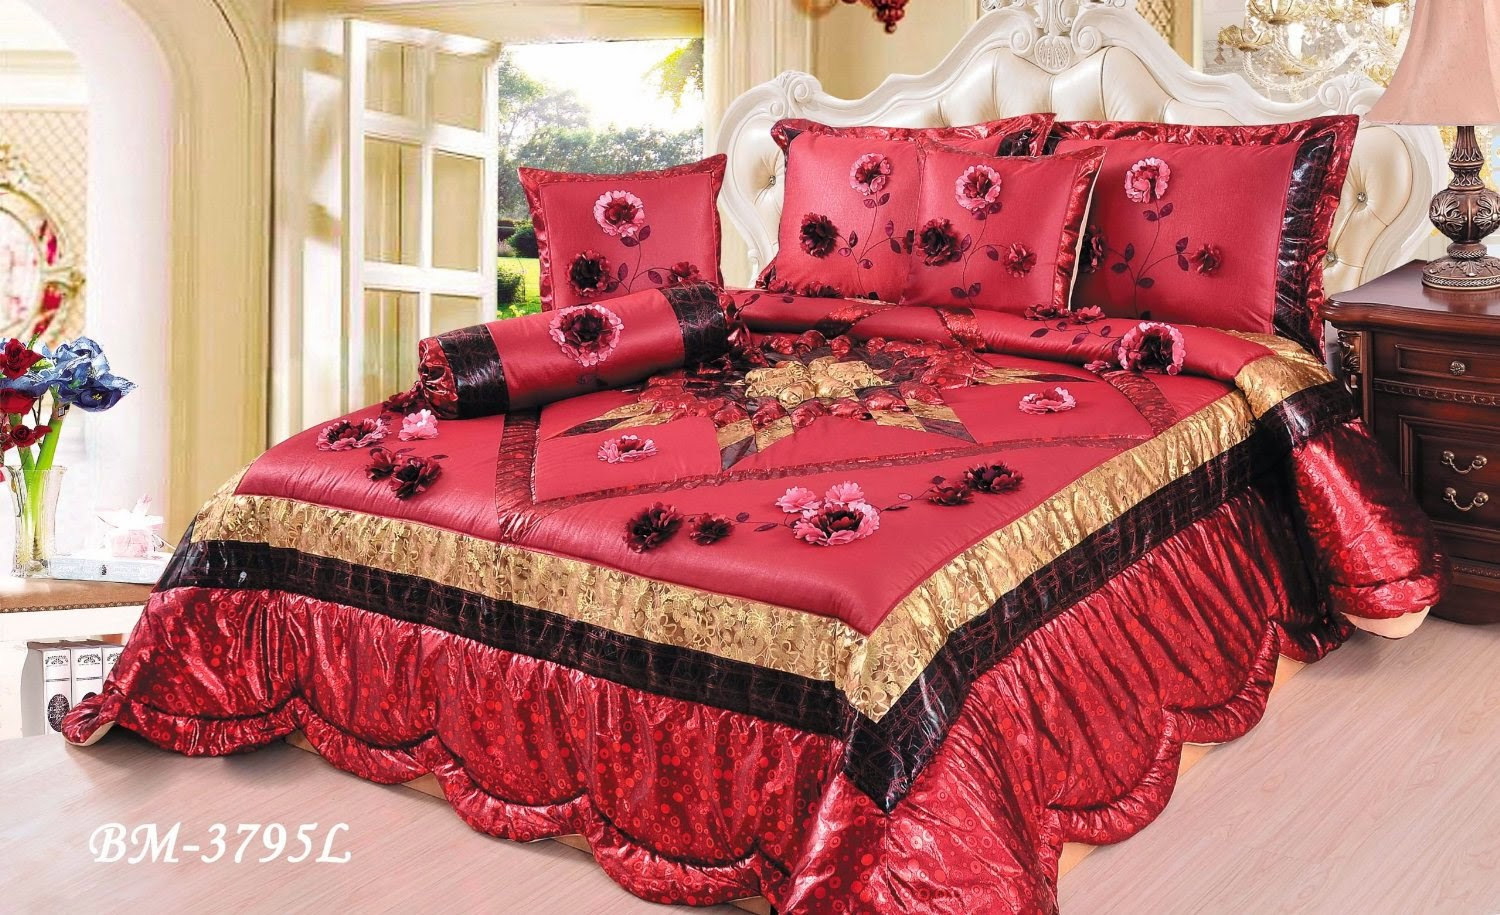 Buy best and beautiful bedding sets on sale black and maroon bedding sets for Beautiful bedroom comforter sets